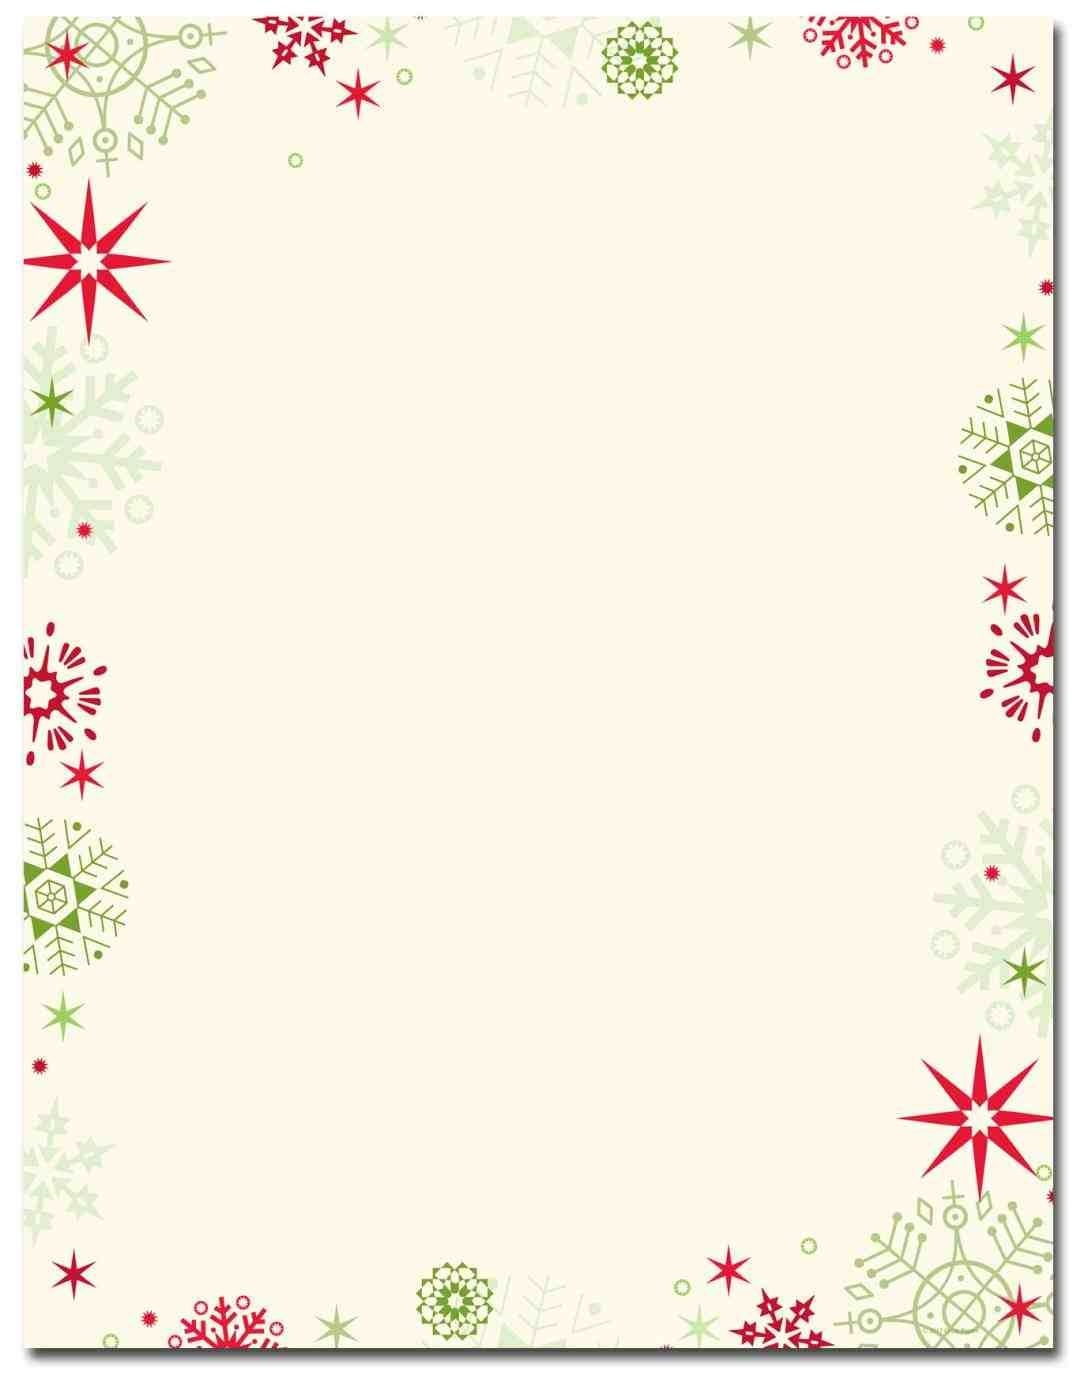 New Free Printable Christmas Stationary Borders At Temasistemi - Free Printable Letterhead Borders